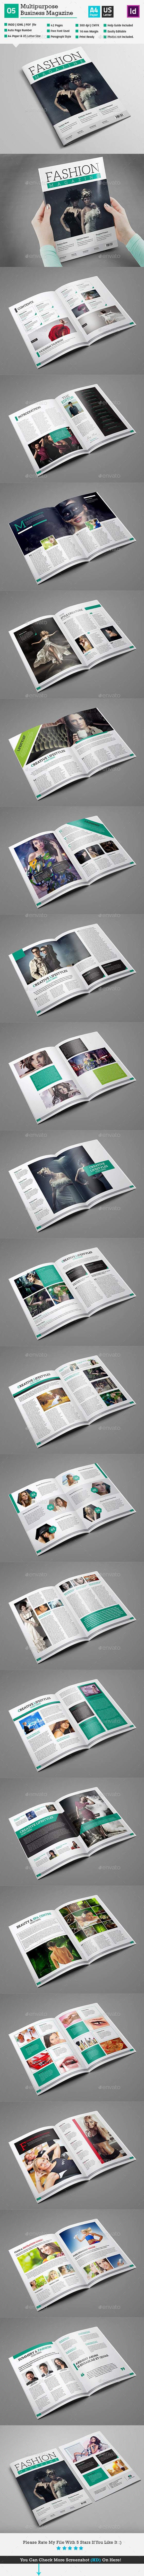 GraphicRiver Fashion Magazine Template InDesign 42 Page V5 10954902